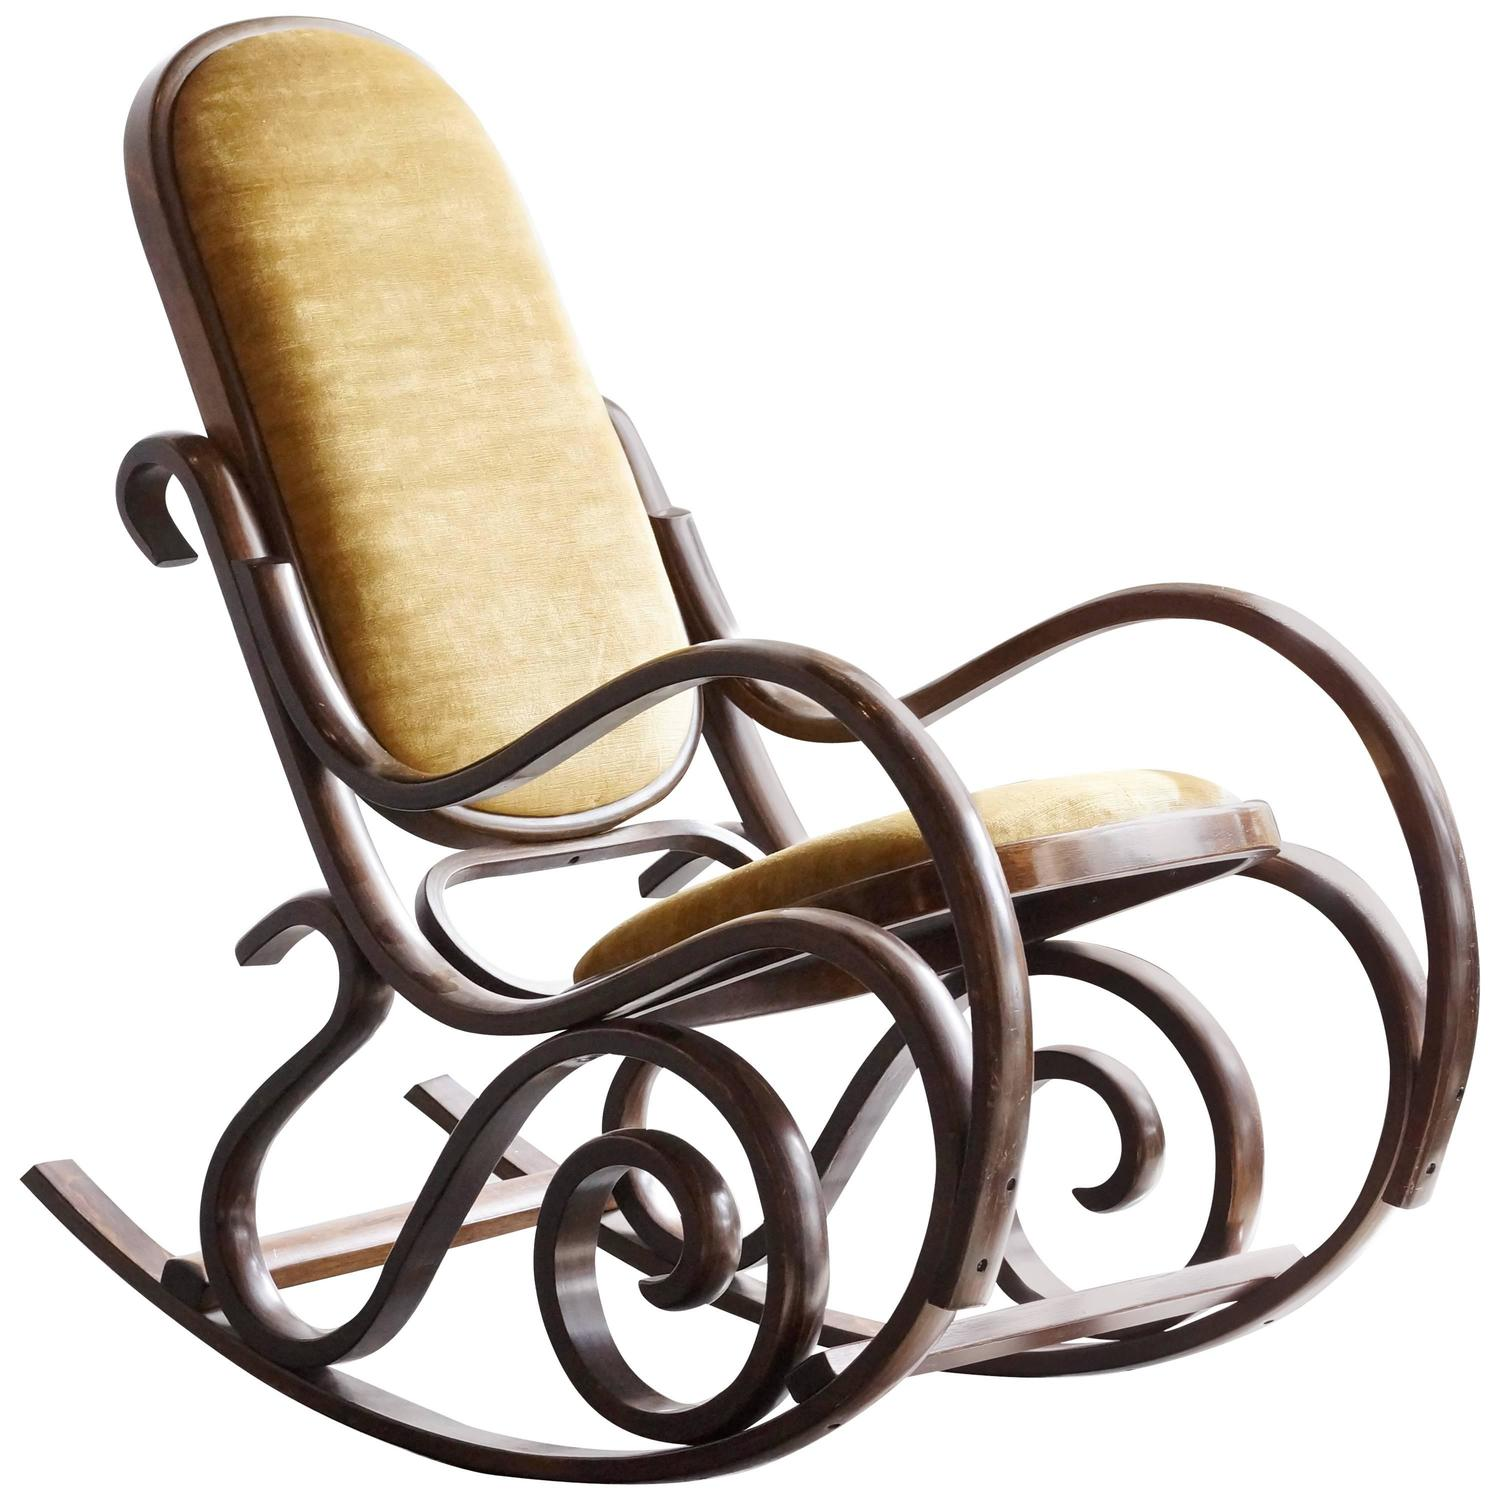 Bentwood rocking chair value - Thonet